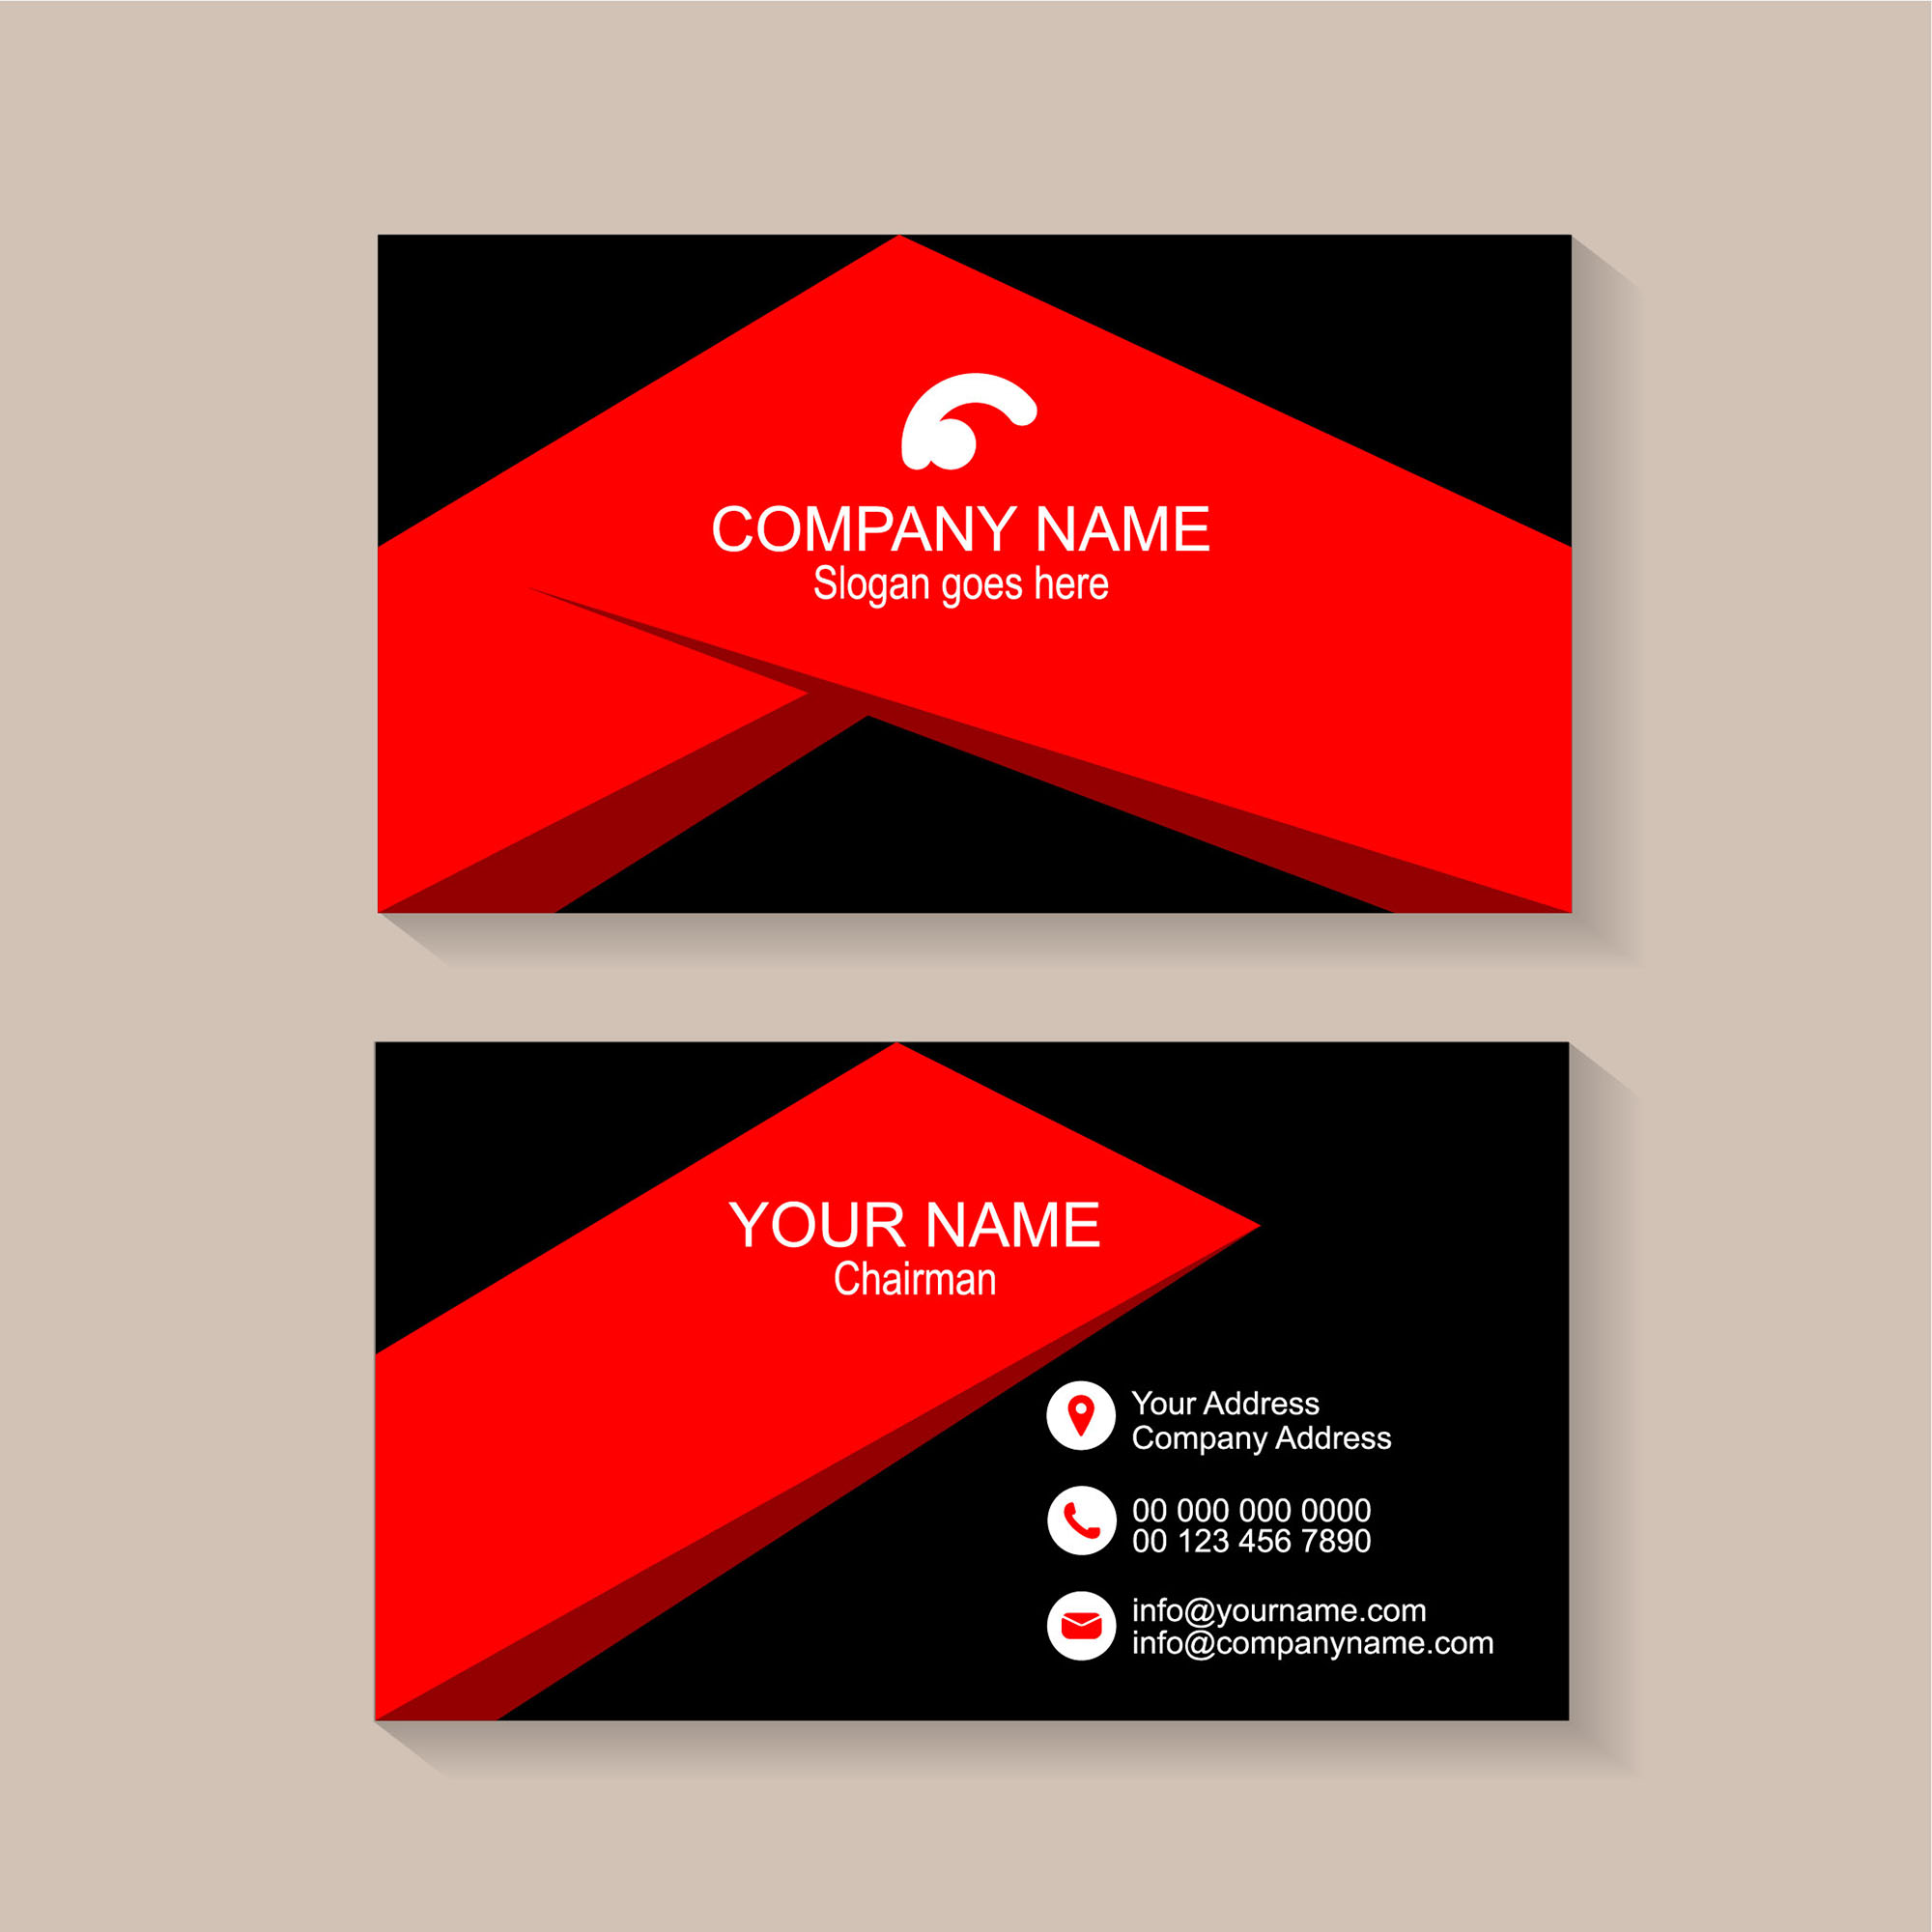 Business card template design free download wisxi business card business cards business card design business card template design templates fbccfo Choice Image